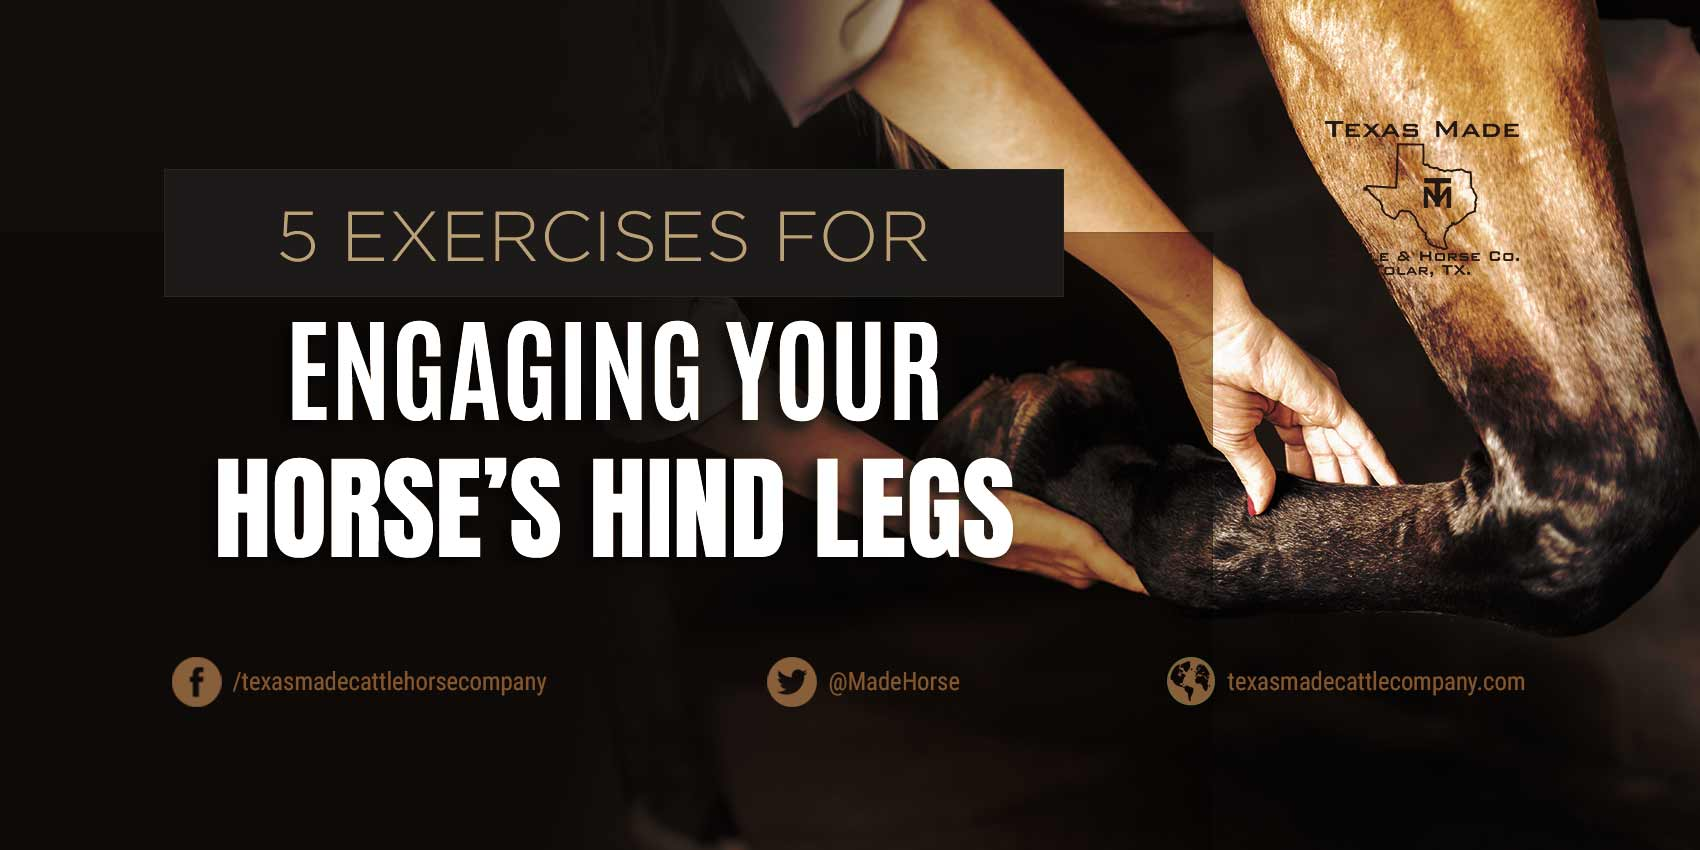 5 Exercises For Engaging Your Horse's Hind Legs